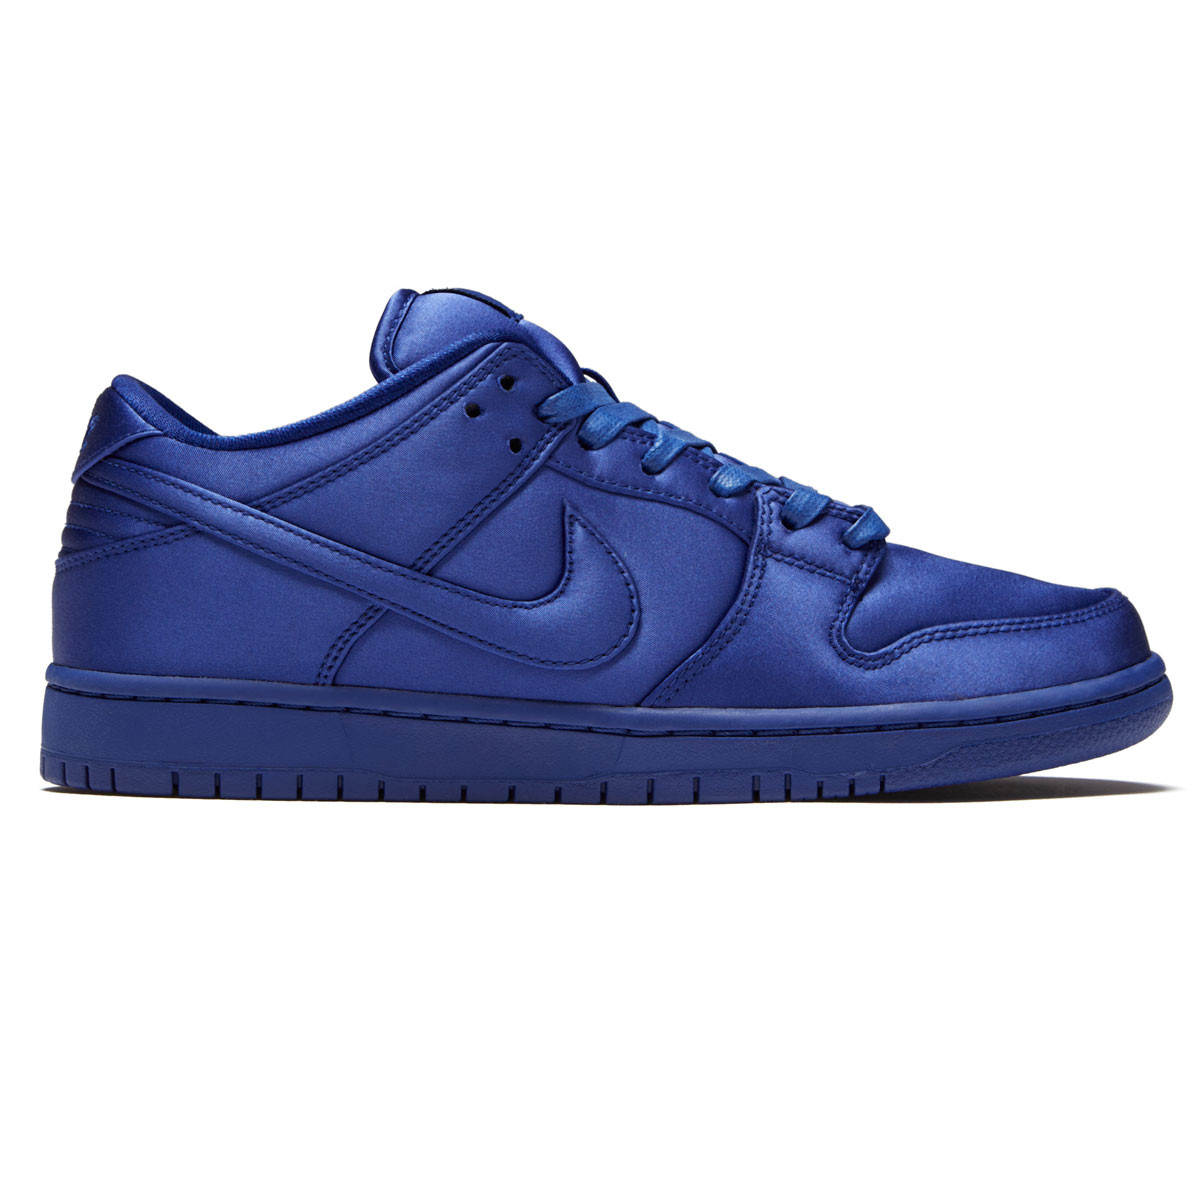 reputable site 6c2af c88c0 Nike SB Dunk Low TRD NBA Shoes - Deep Royal Blue/Deep Royal Blue -